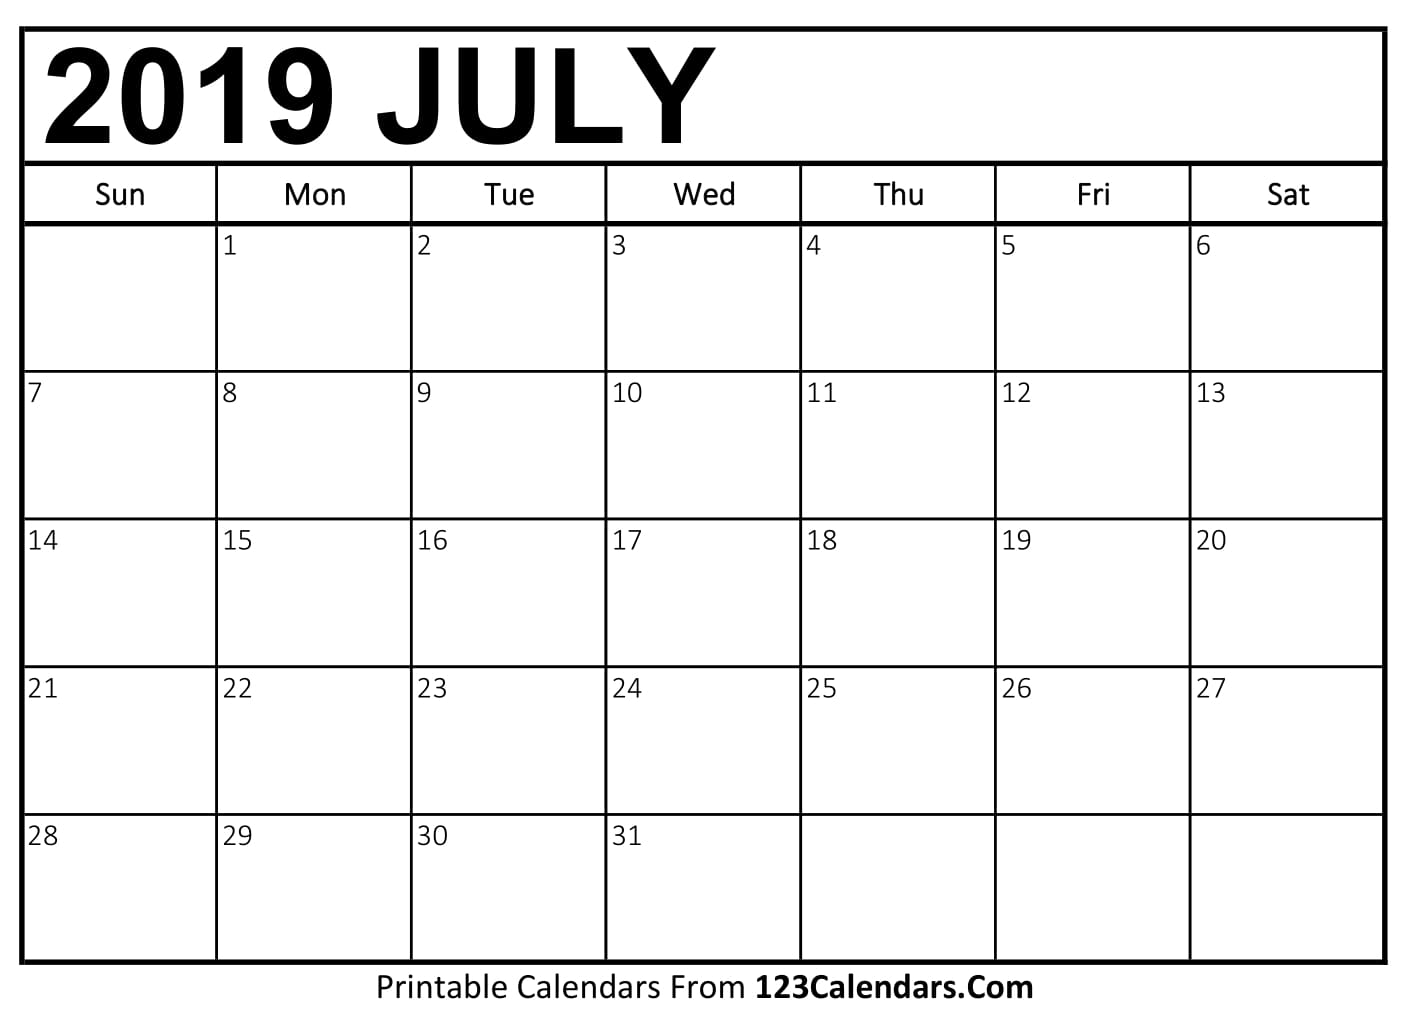 photograph regarding Printable July Calendar called Printable July 2018 Calendar Templates - 123Calendars.Com